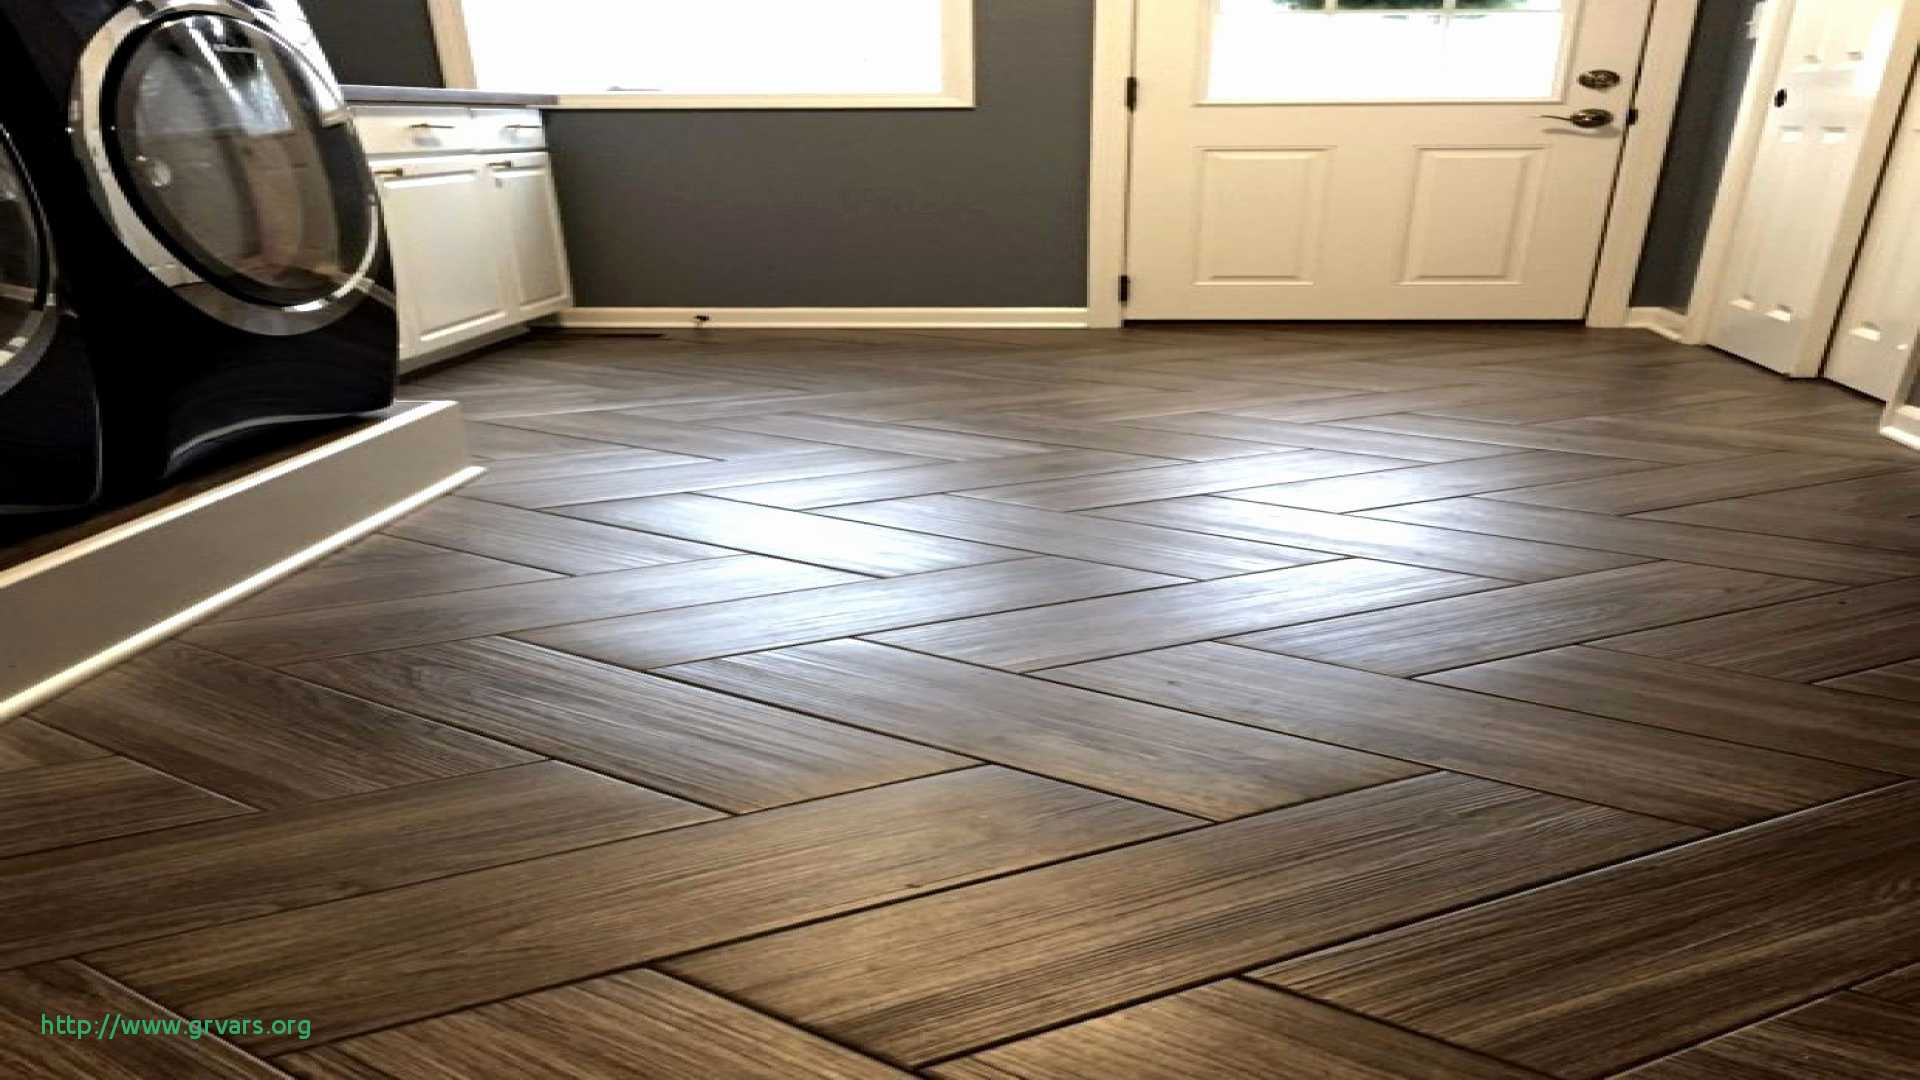 how to install hardwood floors on cement of 20 luxe how are hardwood floors installed ideas blog regarding kitchen floor tiles home depot elegant s media cache ak0 pinimg 736x 43 0d 97 best 50 inspirational how to install wood